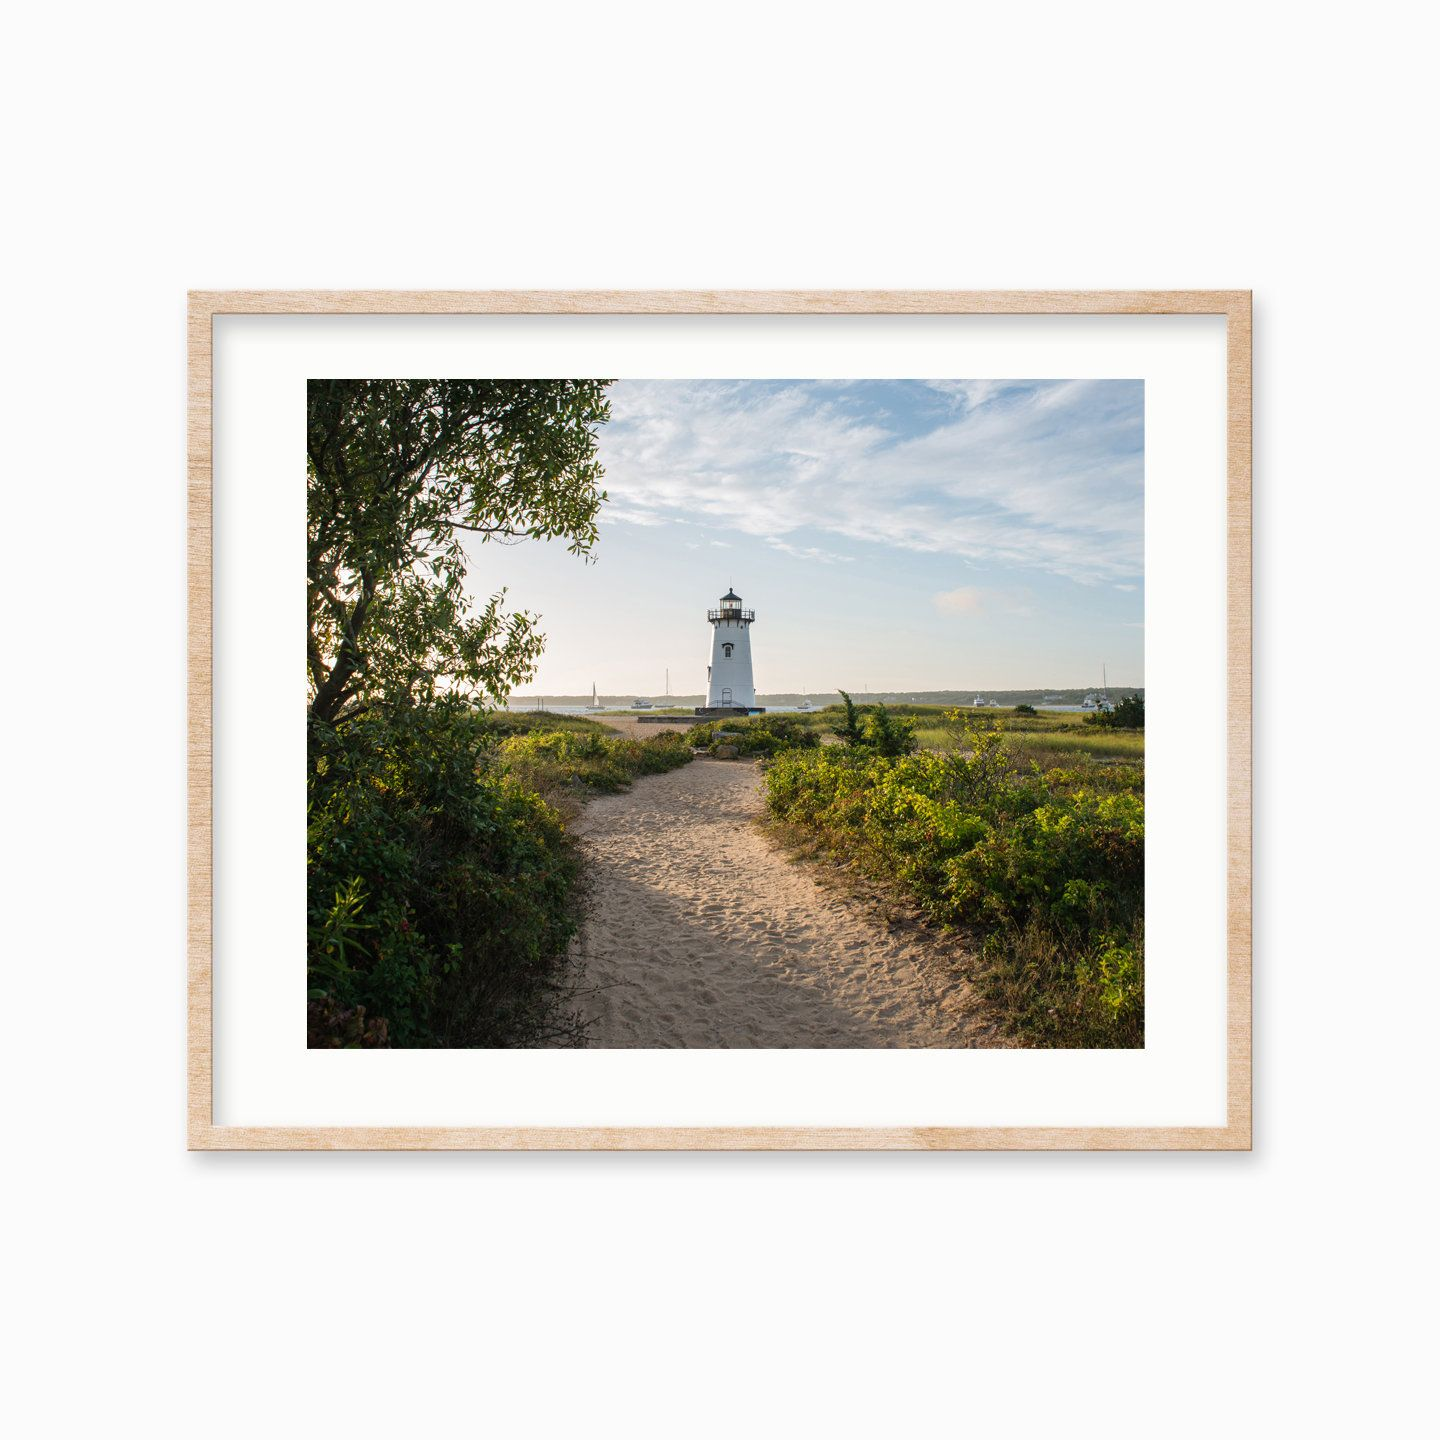 Edgartown Lighthouse Sail Boats Seagrass Martha S Vineyard Photography Photographs Art Prints Blank Pho Vineyard Photography Photo Wall Art Lighthouse Print